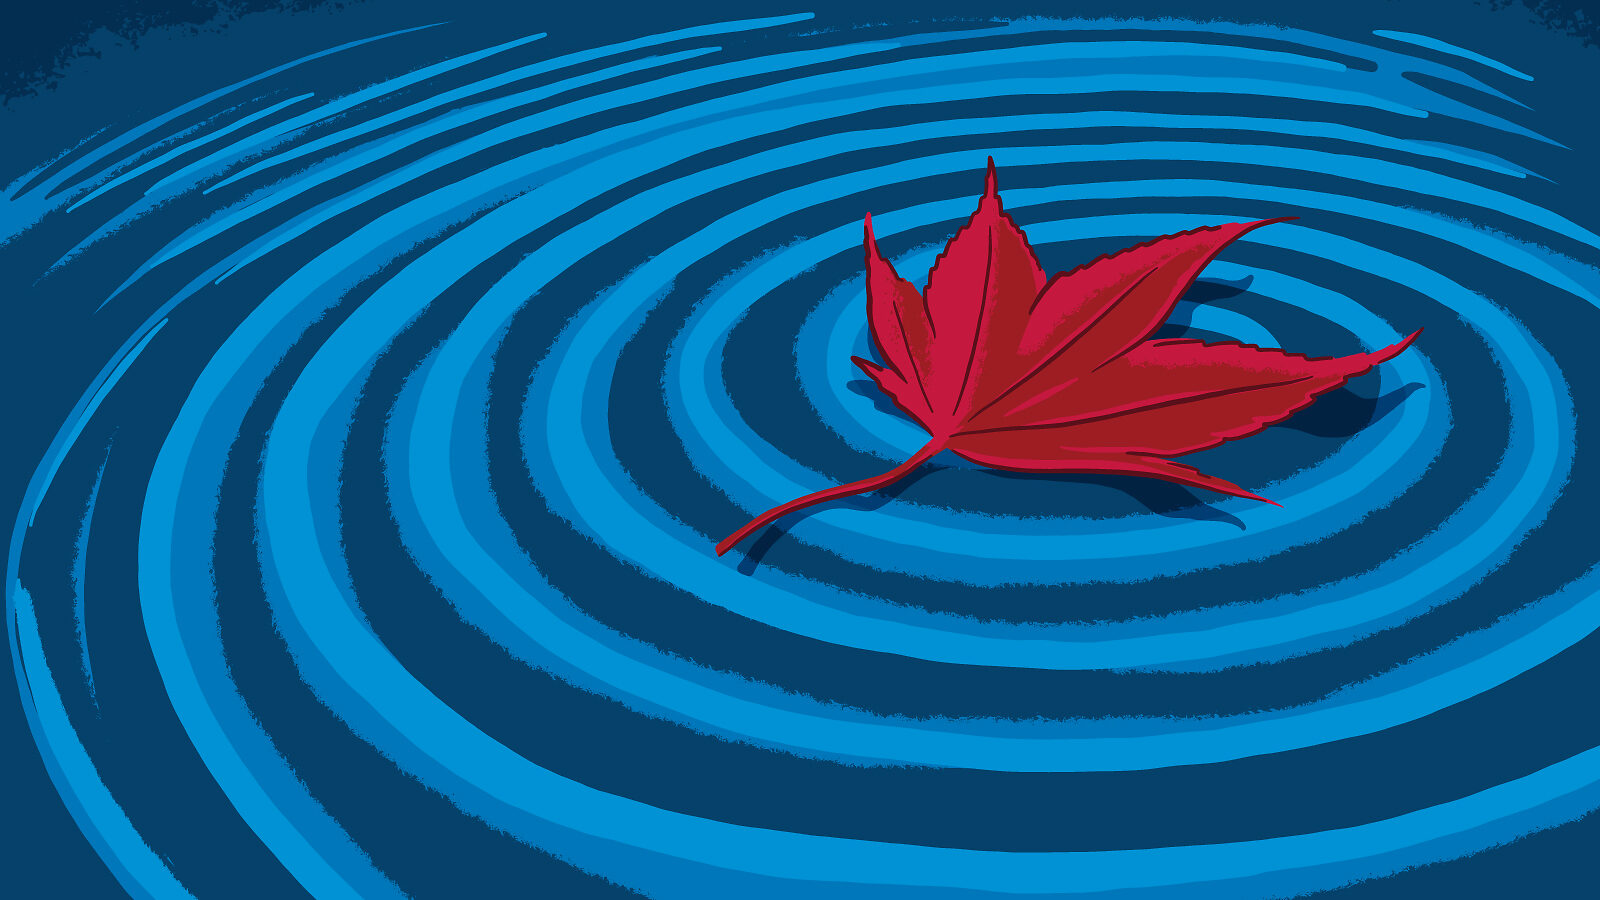 Illustration of a floating Japanese Maple leaf making waves in water